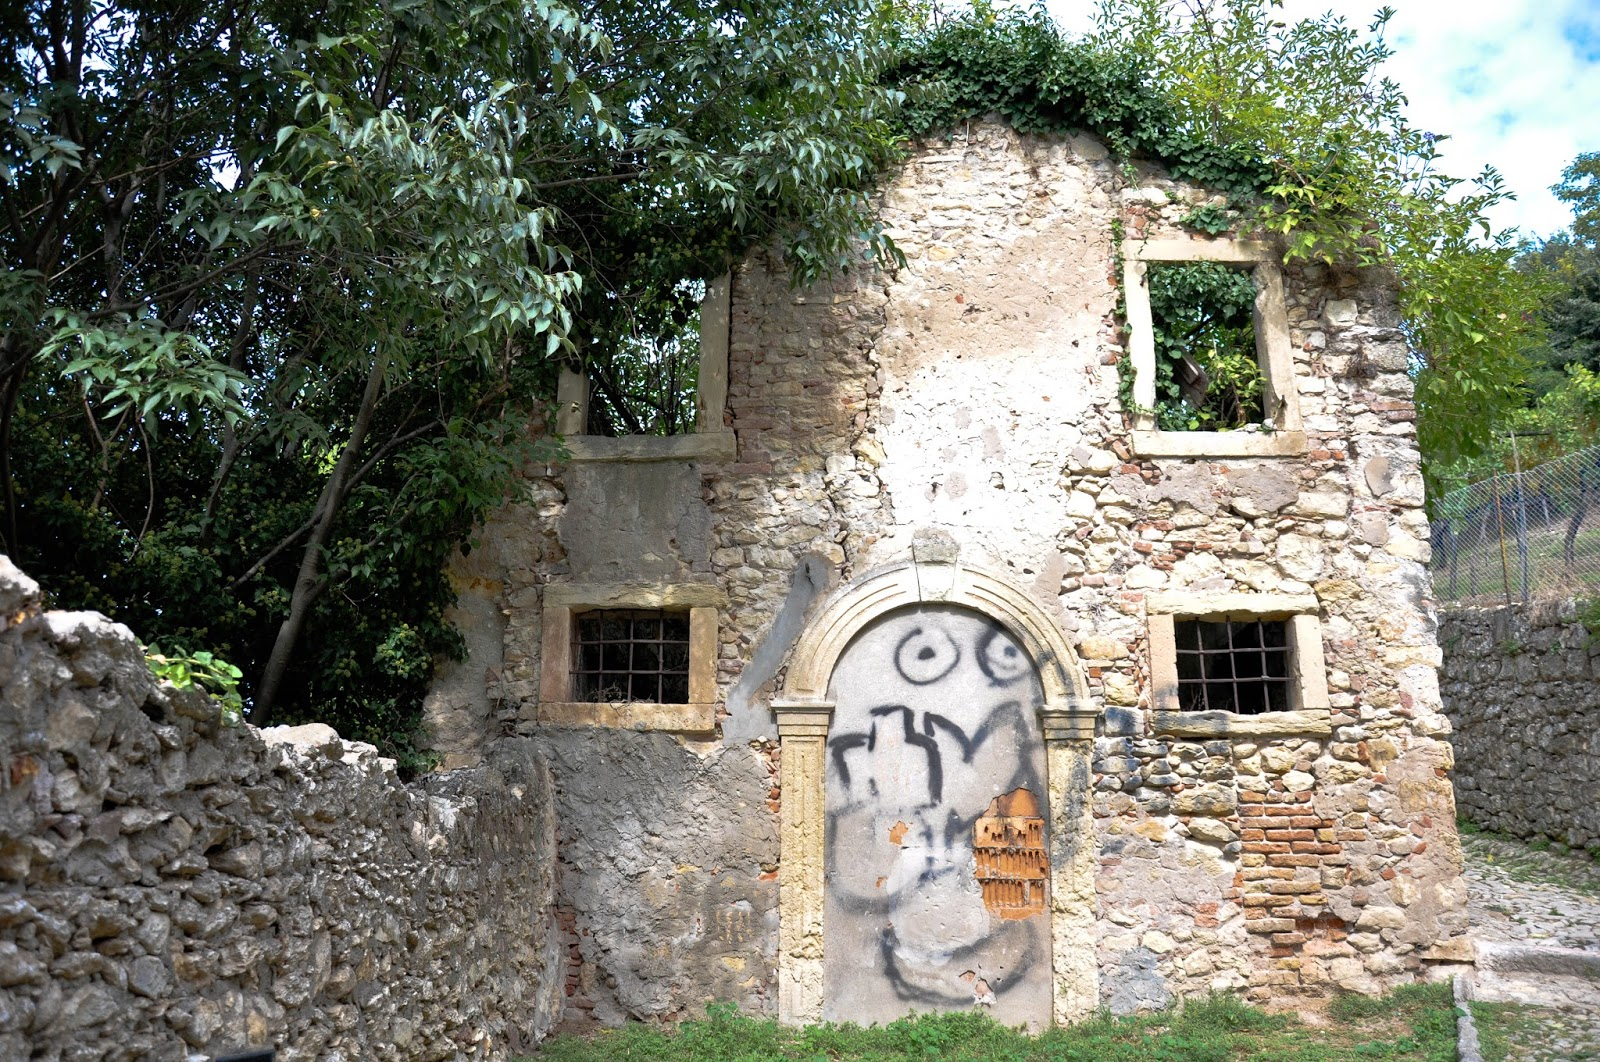 An abandoned house on the way to the castle, Soave, Veneto, Italy